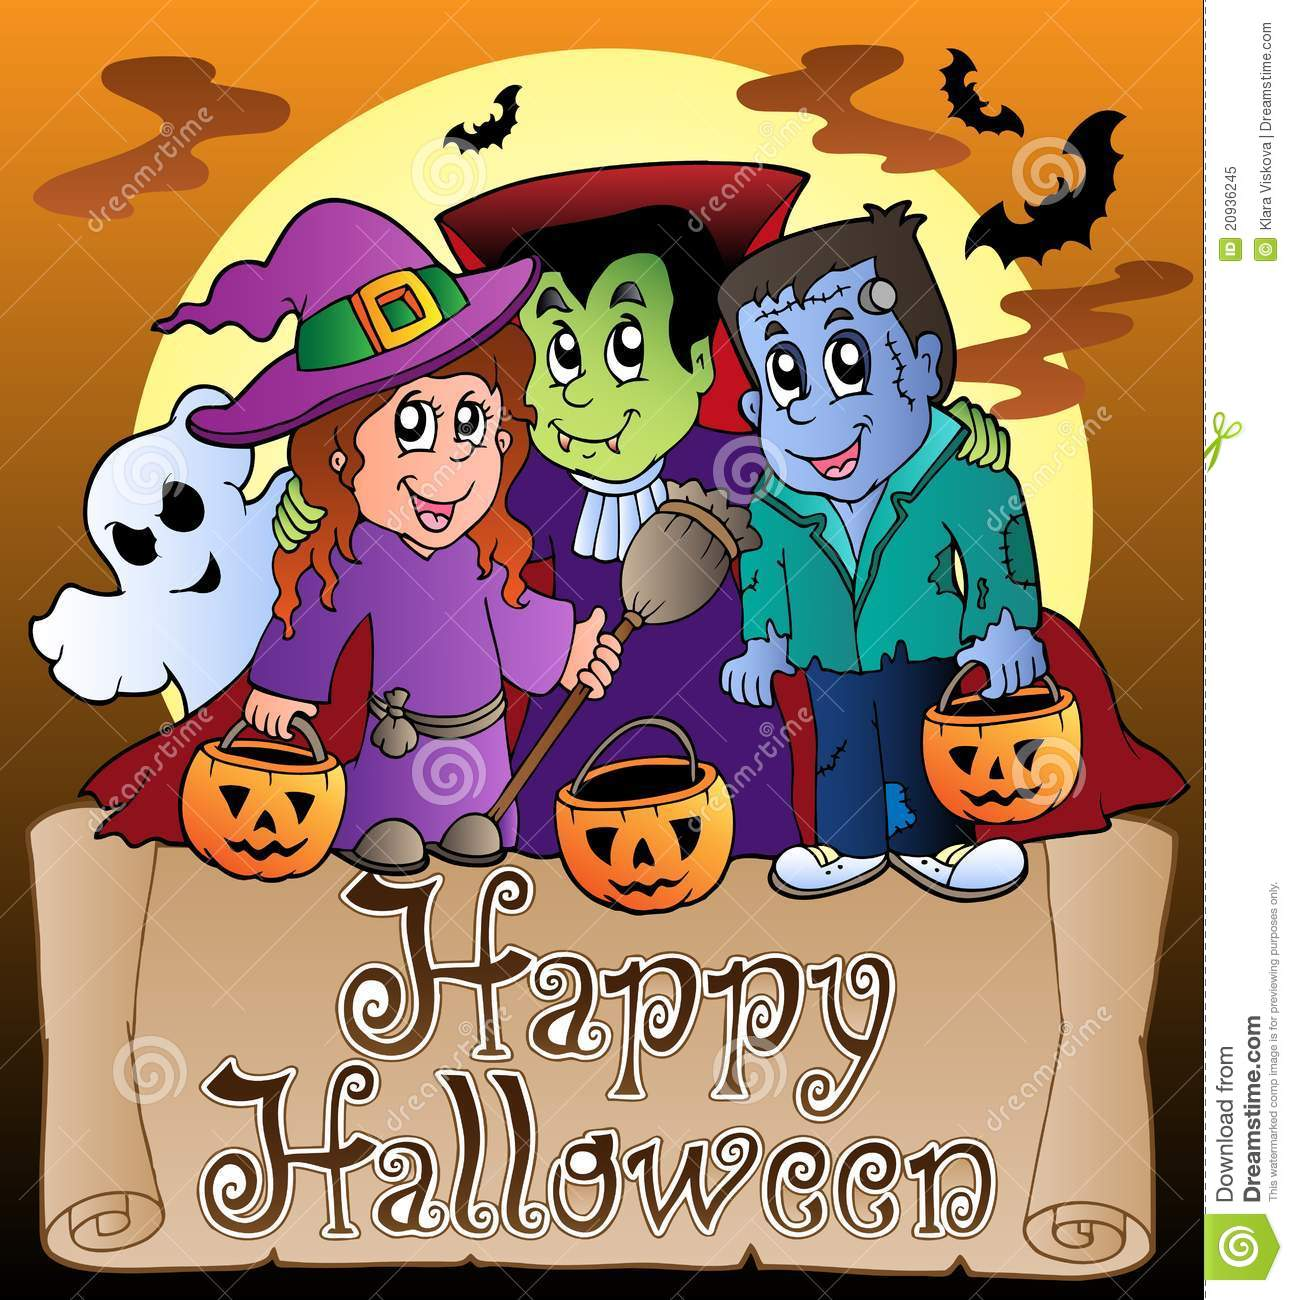 theme with happy halloween banner 3 stock vector - illustration of